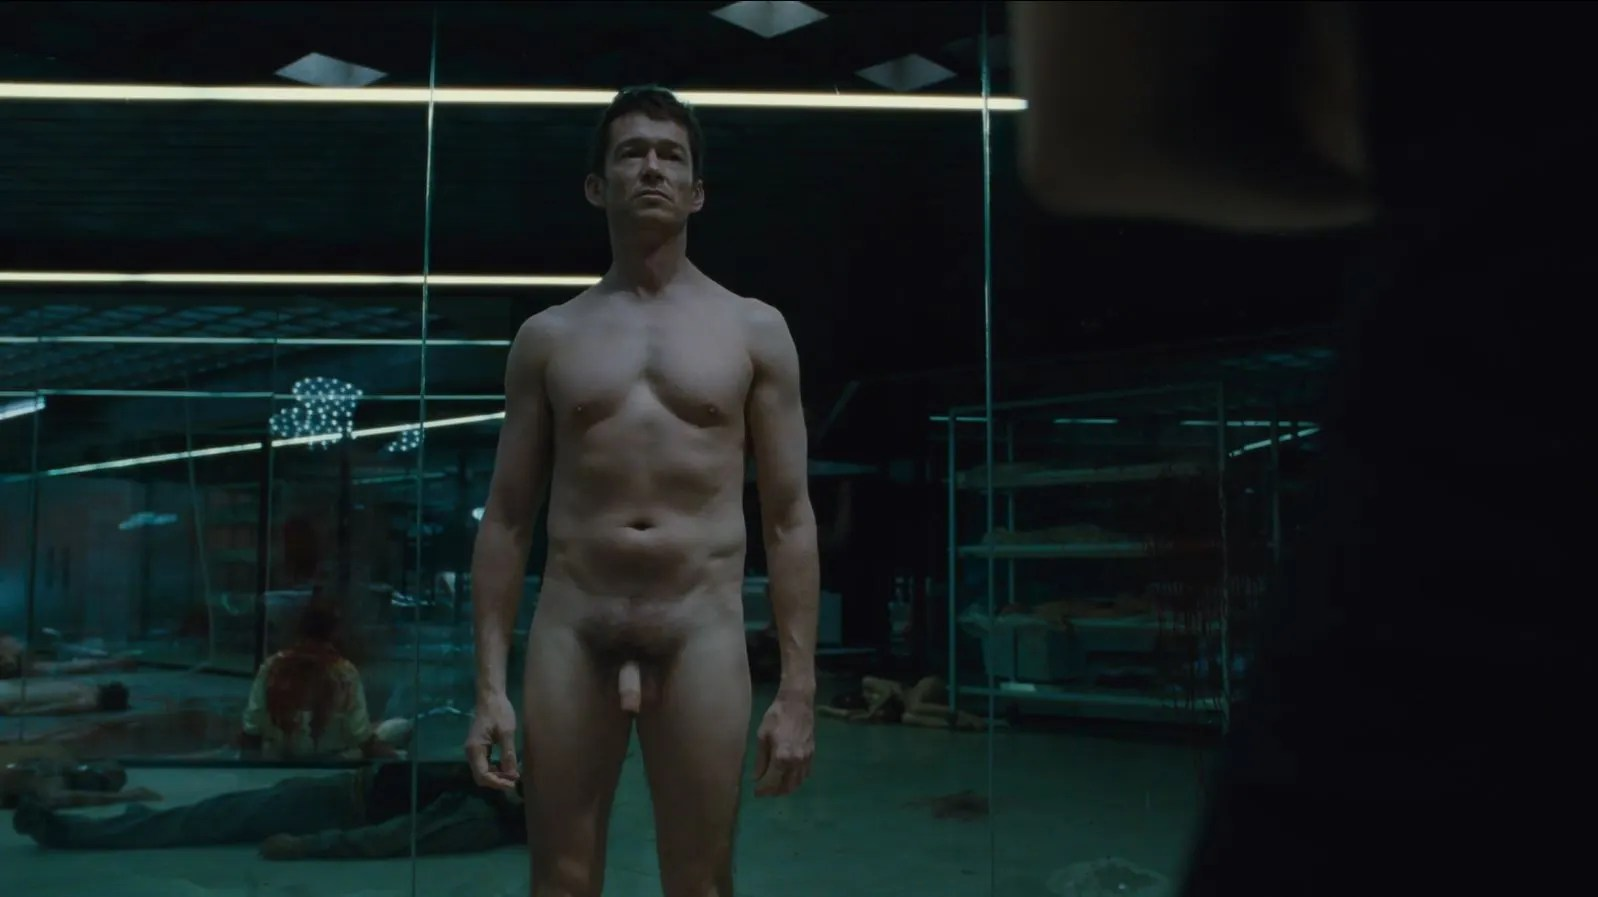 Westworld S02E01 Journey into Night Review - Simon Quarterman as Lee Sizemore full frontal nude